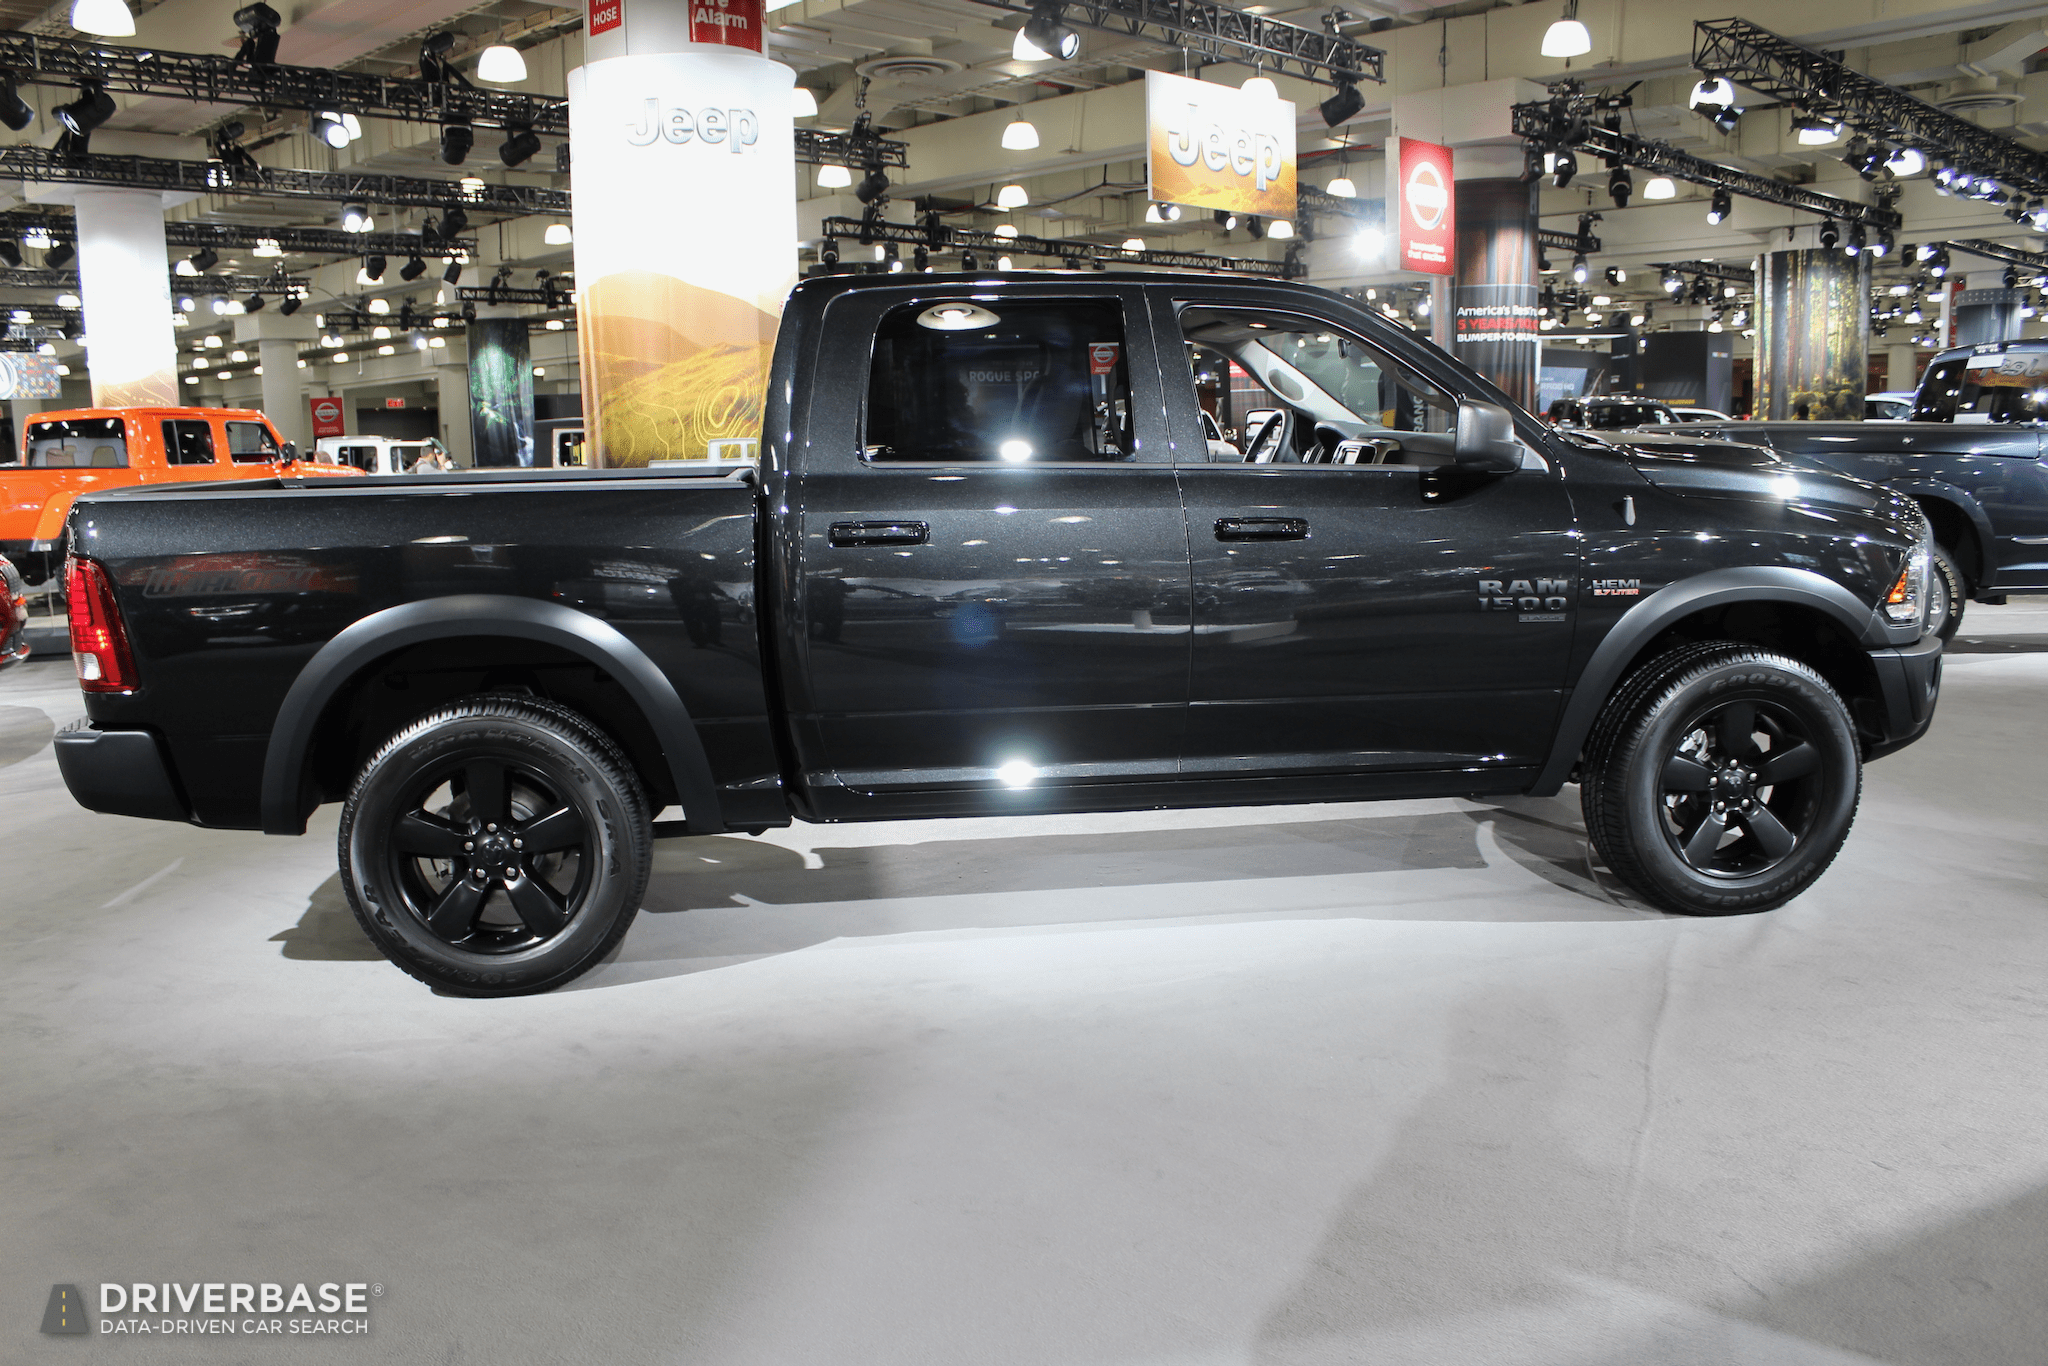 Dodge 1500 For Sale >> 2019 Dodge 1500 Warlock Truck at the 2019 New York Auto ...